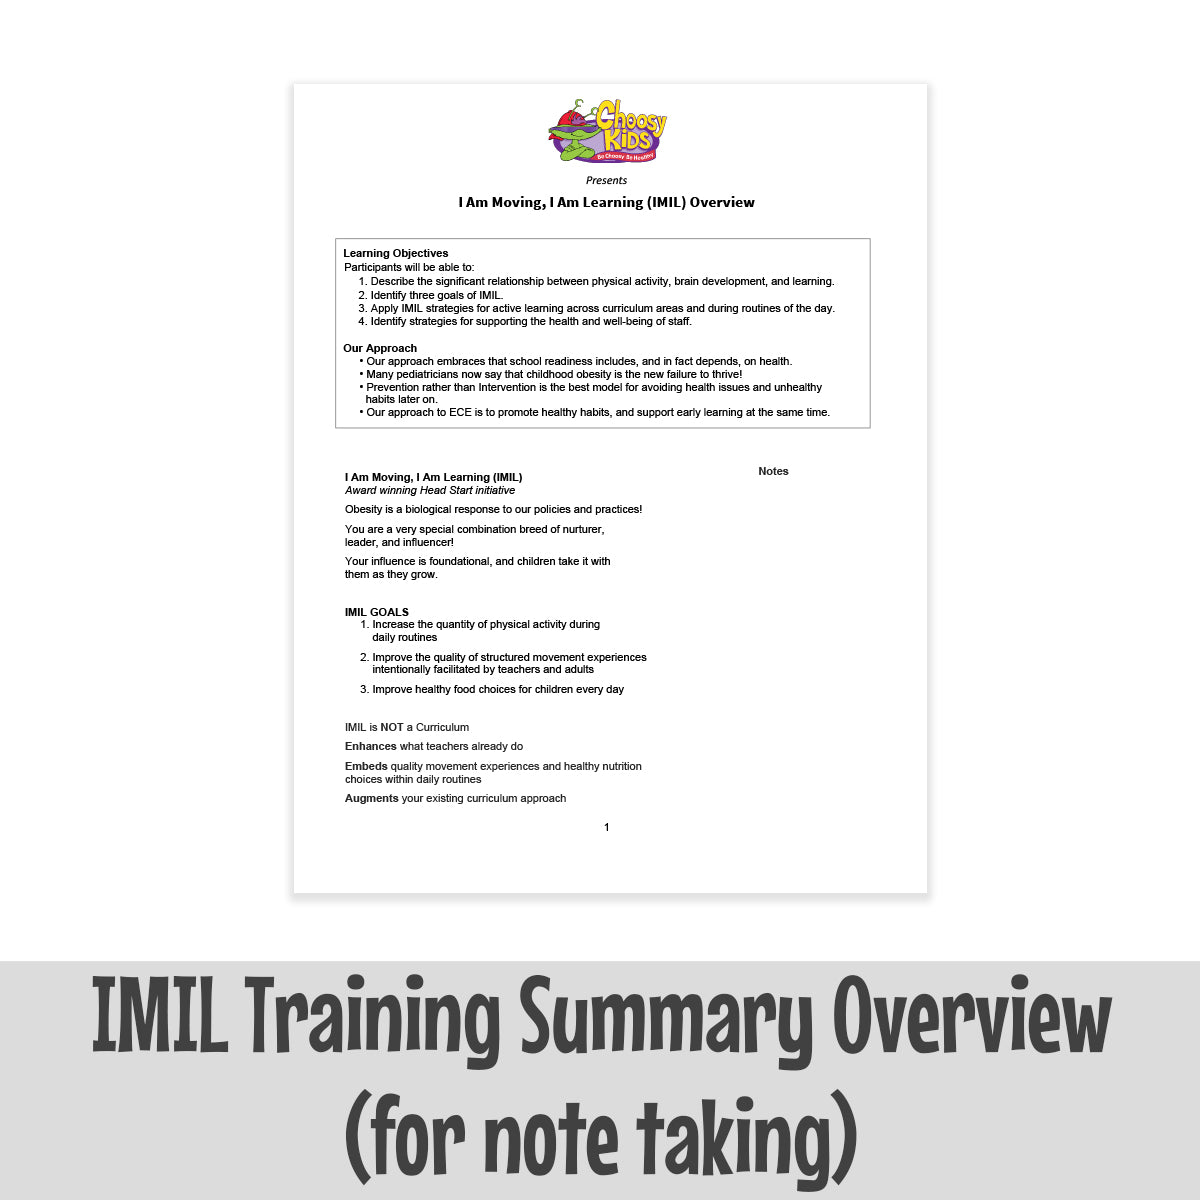 IMIL Training Summary Overview